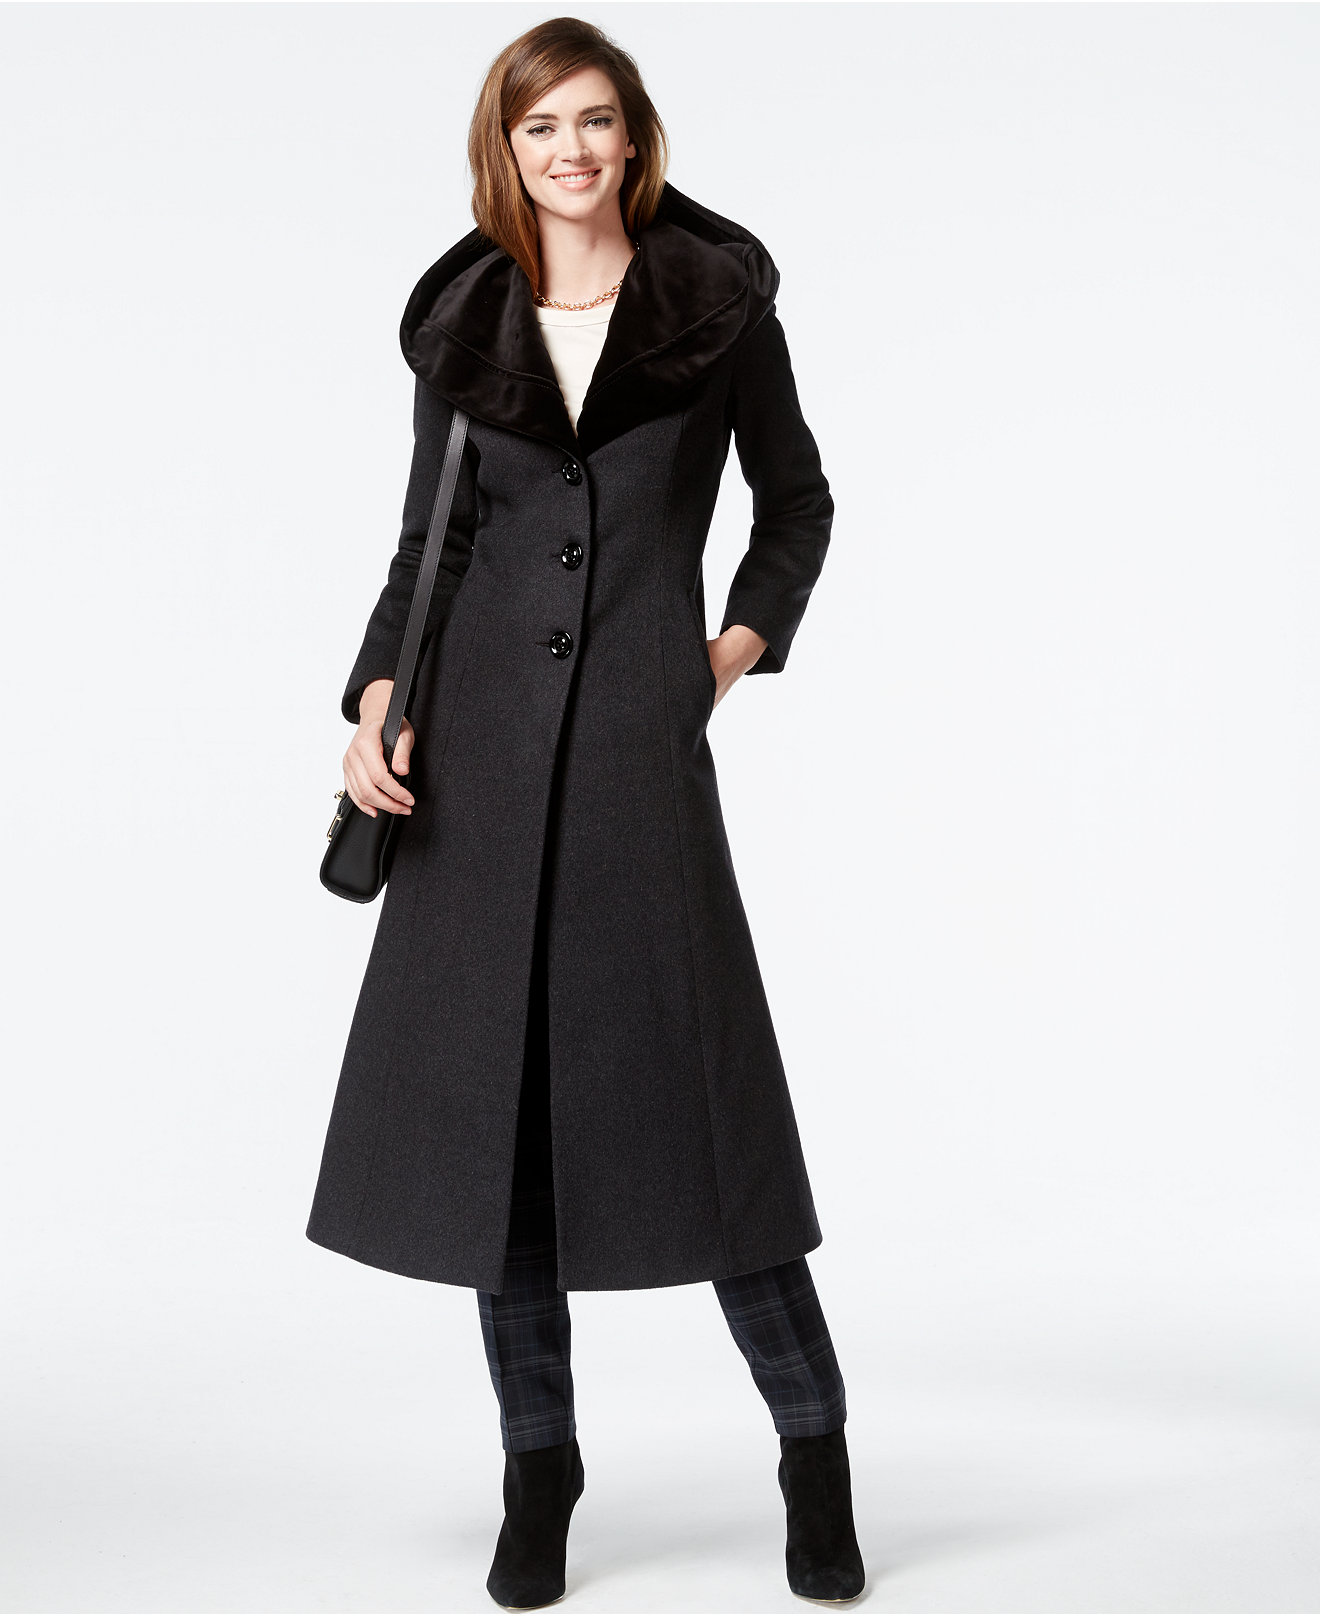 Long Dress Jackets For Women